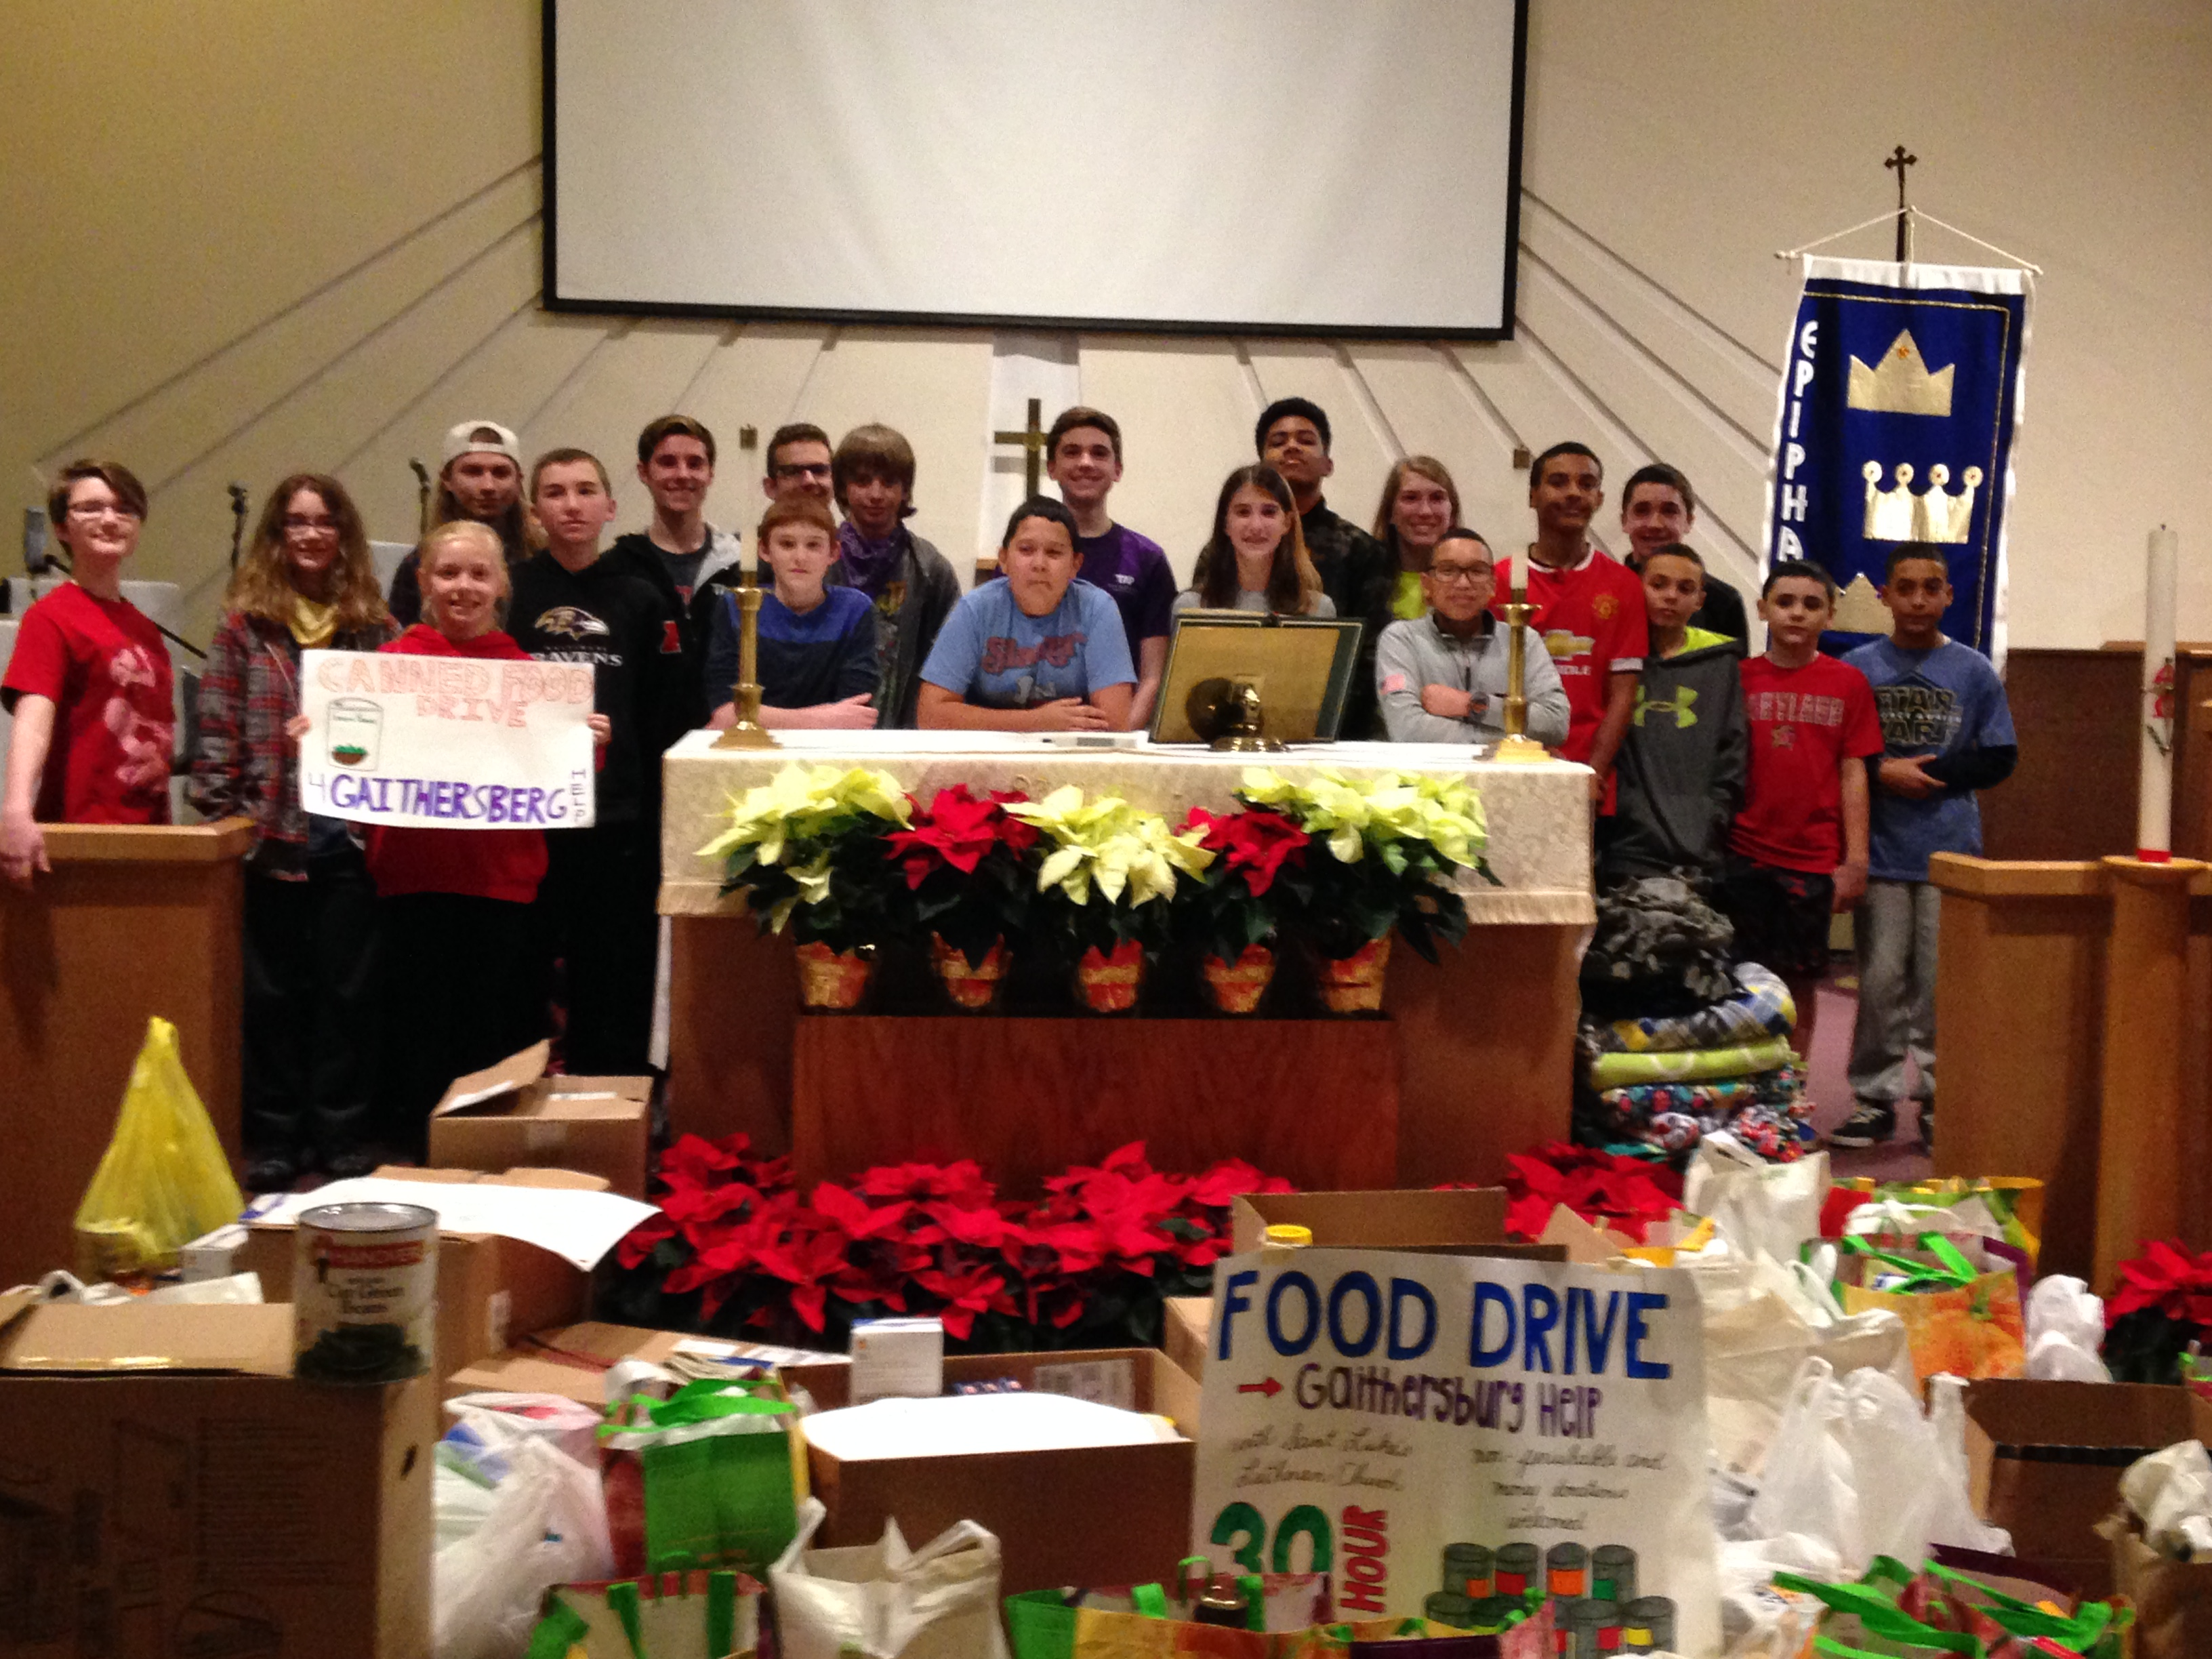 Middle and High School Youth collected food for Gaithersburg HELP and raised money for hunger relief during the recent 30 Hour Famine